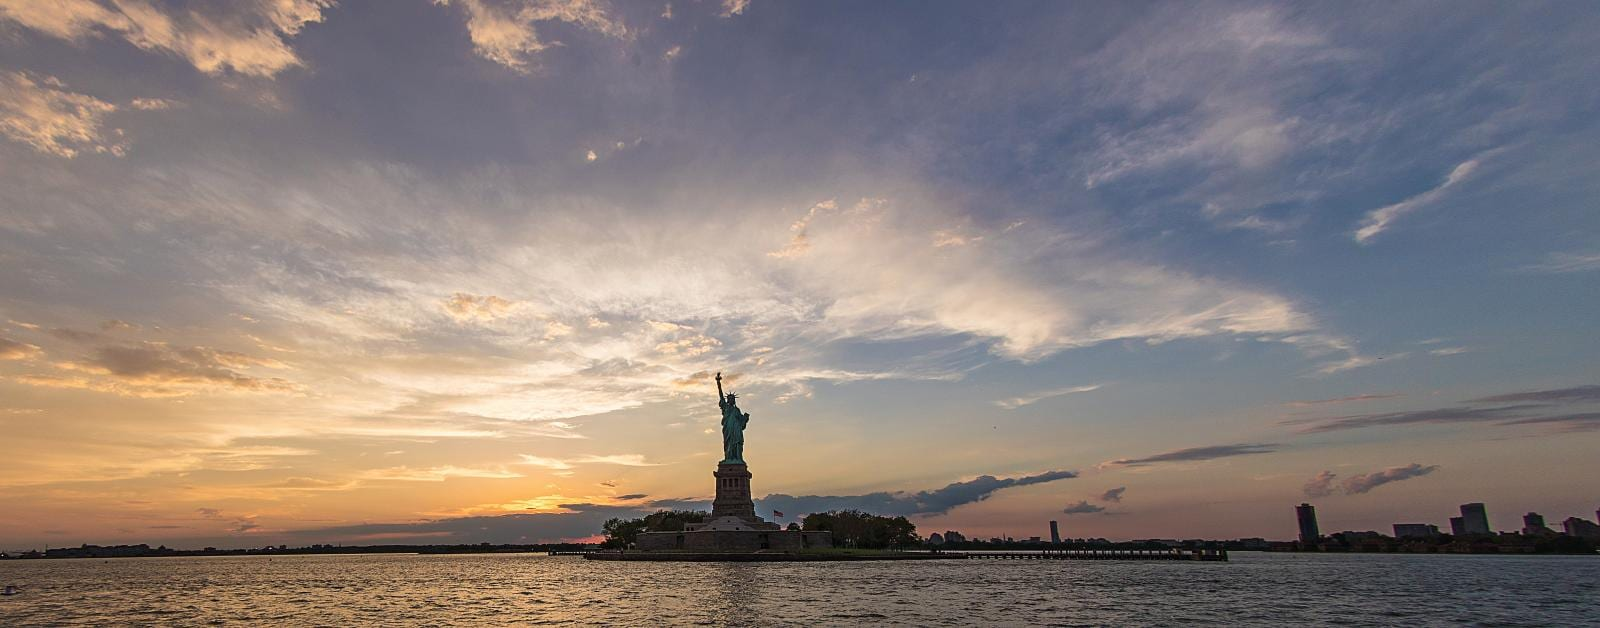 Sunset Cruise to Statue of Liberty